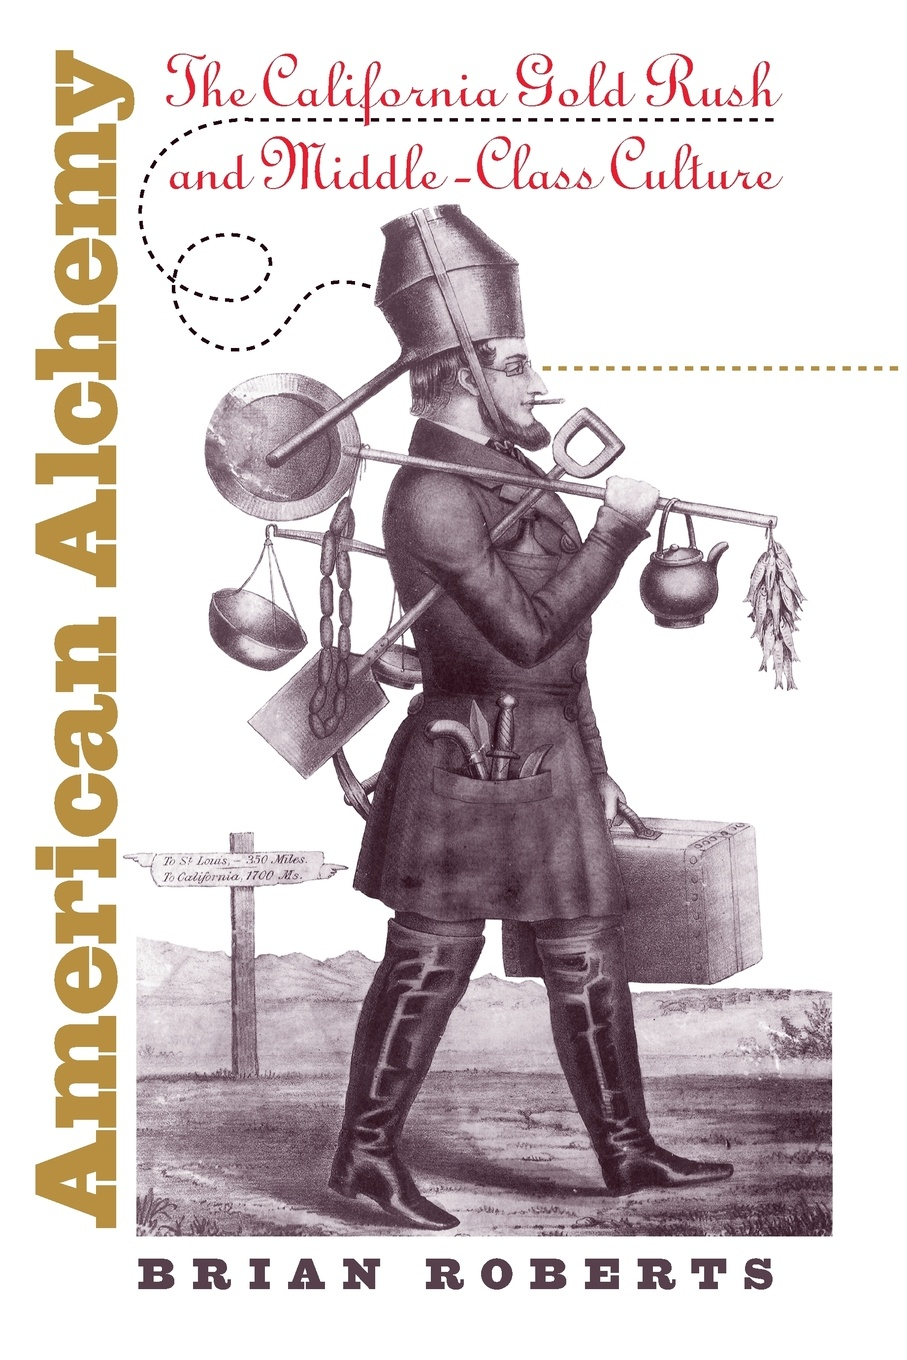 Brian Roberts American Alchemy. The California Gold Rush and Middle-Class Culture what was the gold rush